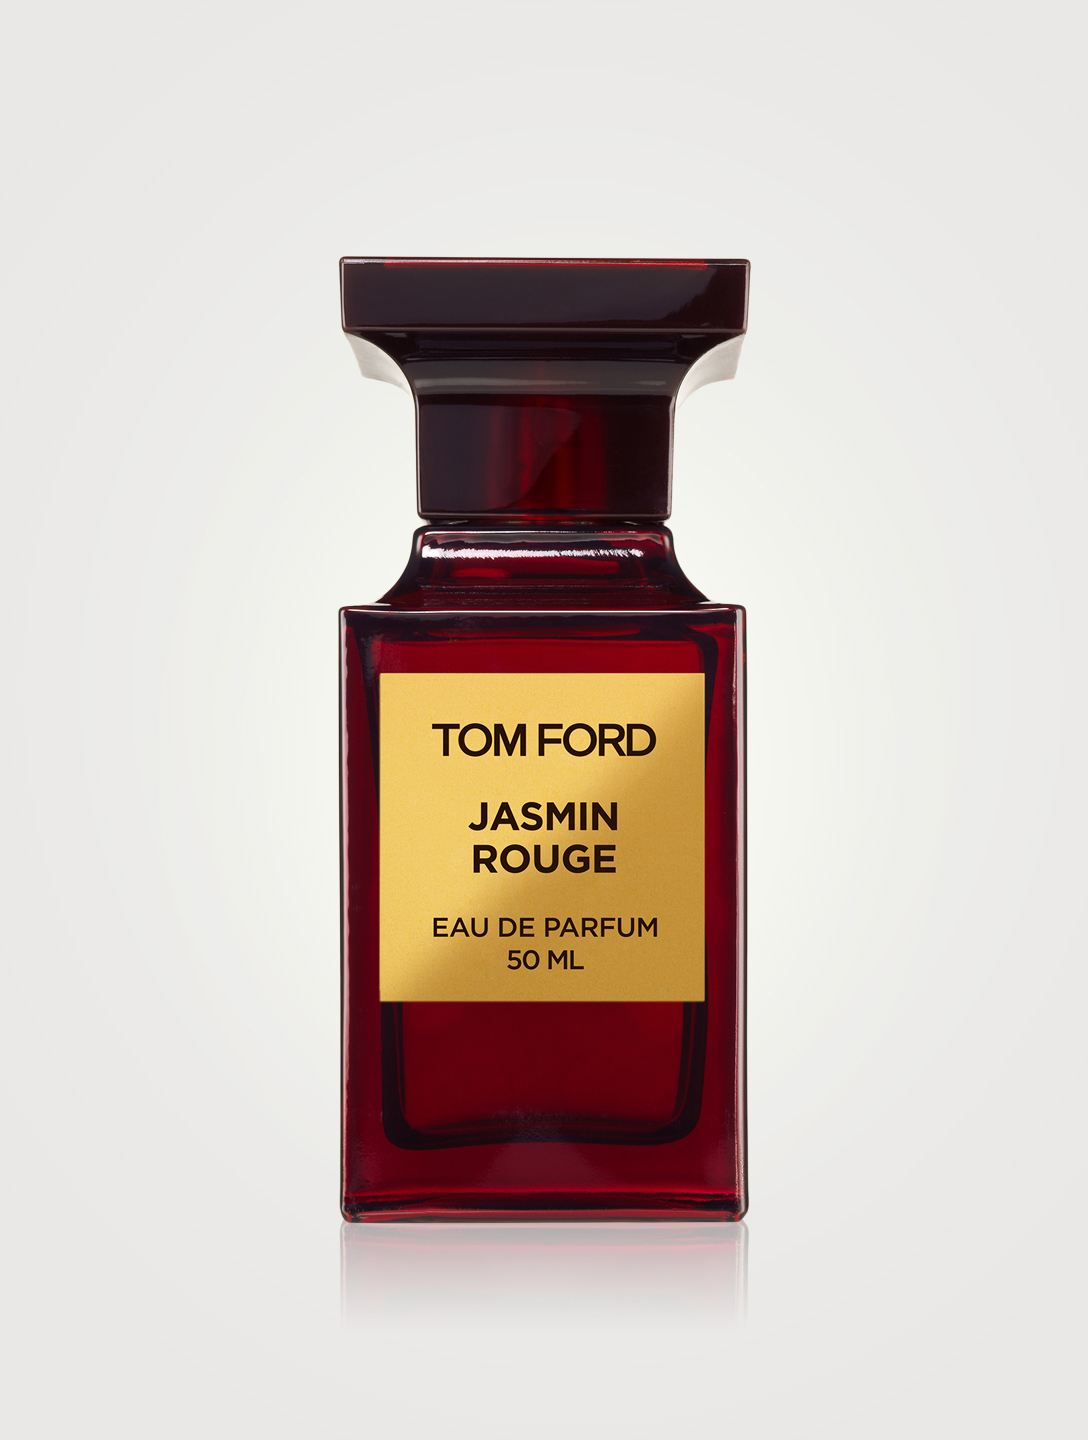 Tom Ford Jasmin Rouge Eau De Parfum Holt Renfrew